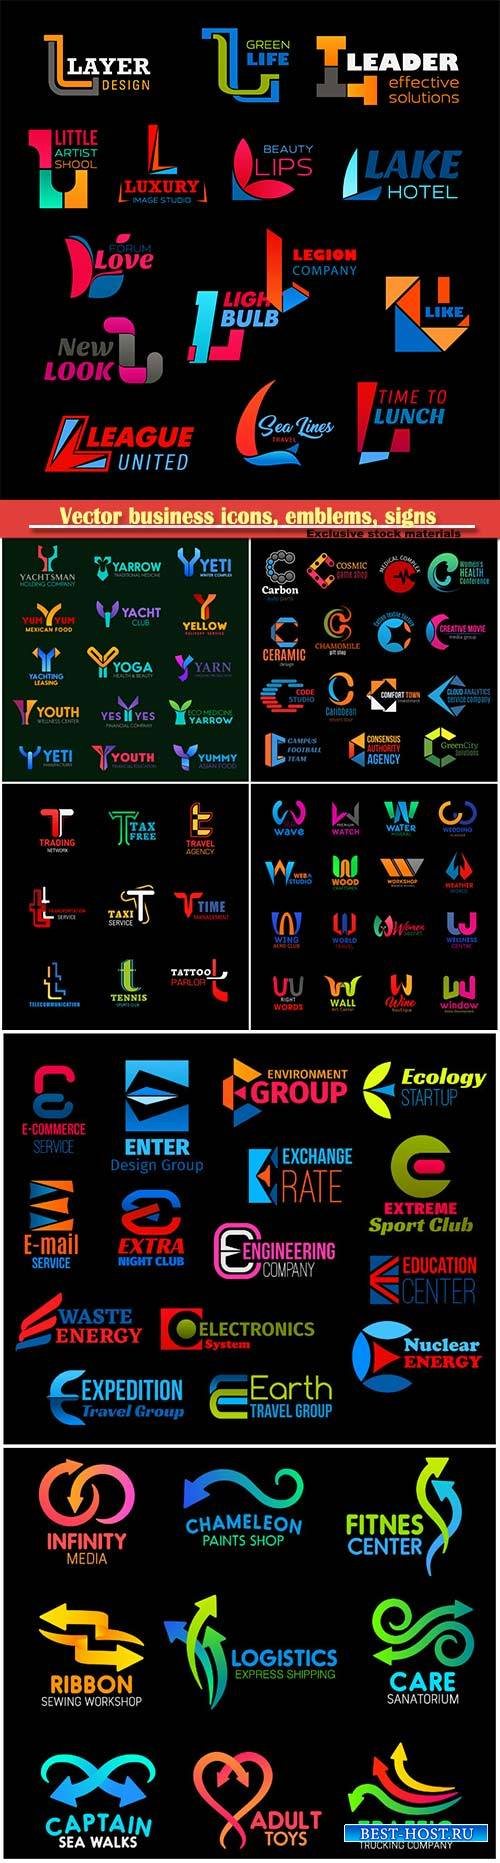 Vector business icons, emblems, signs and symbols